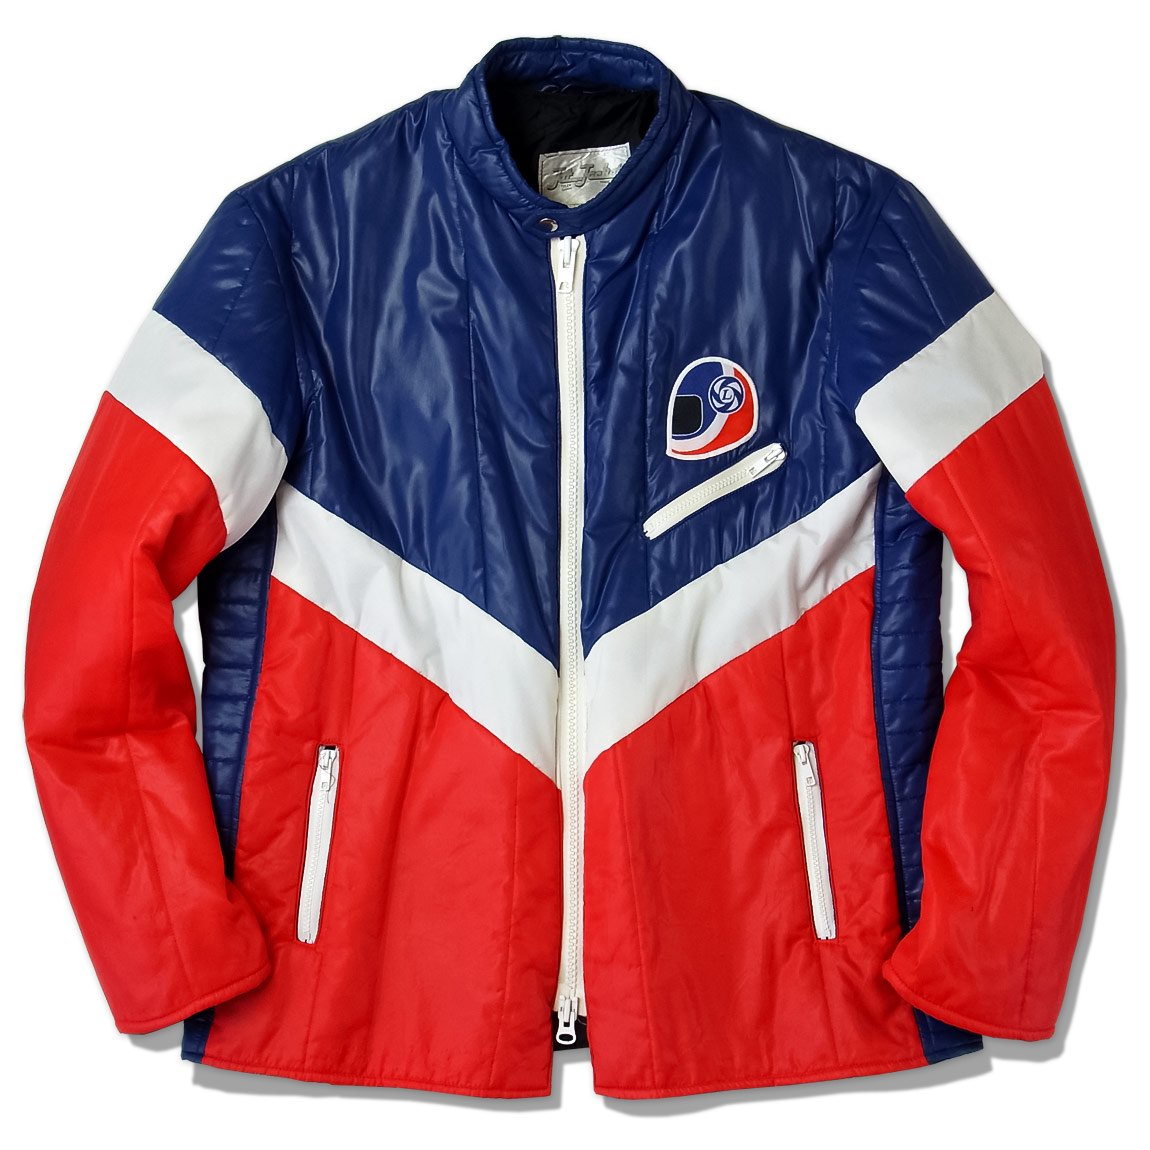 BL WORKS RALLY JACKET